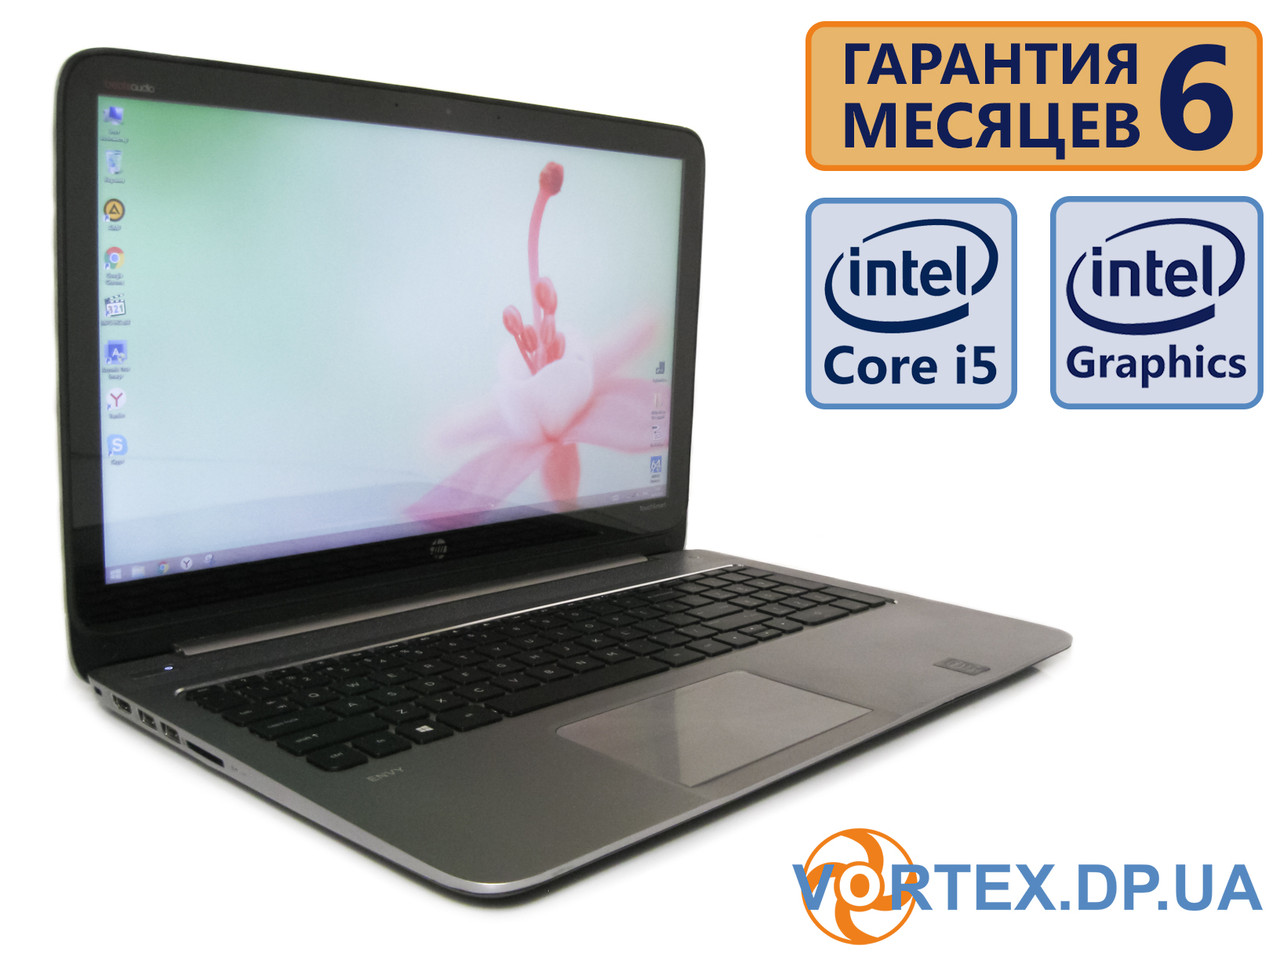 Ультрабук HP M6-k025dx 15.6 (1920x1080) / Intel Core i5-4200U (2x1.6GH